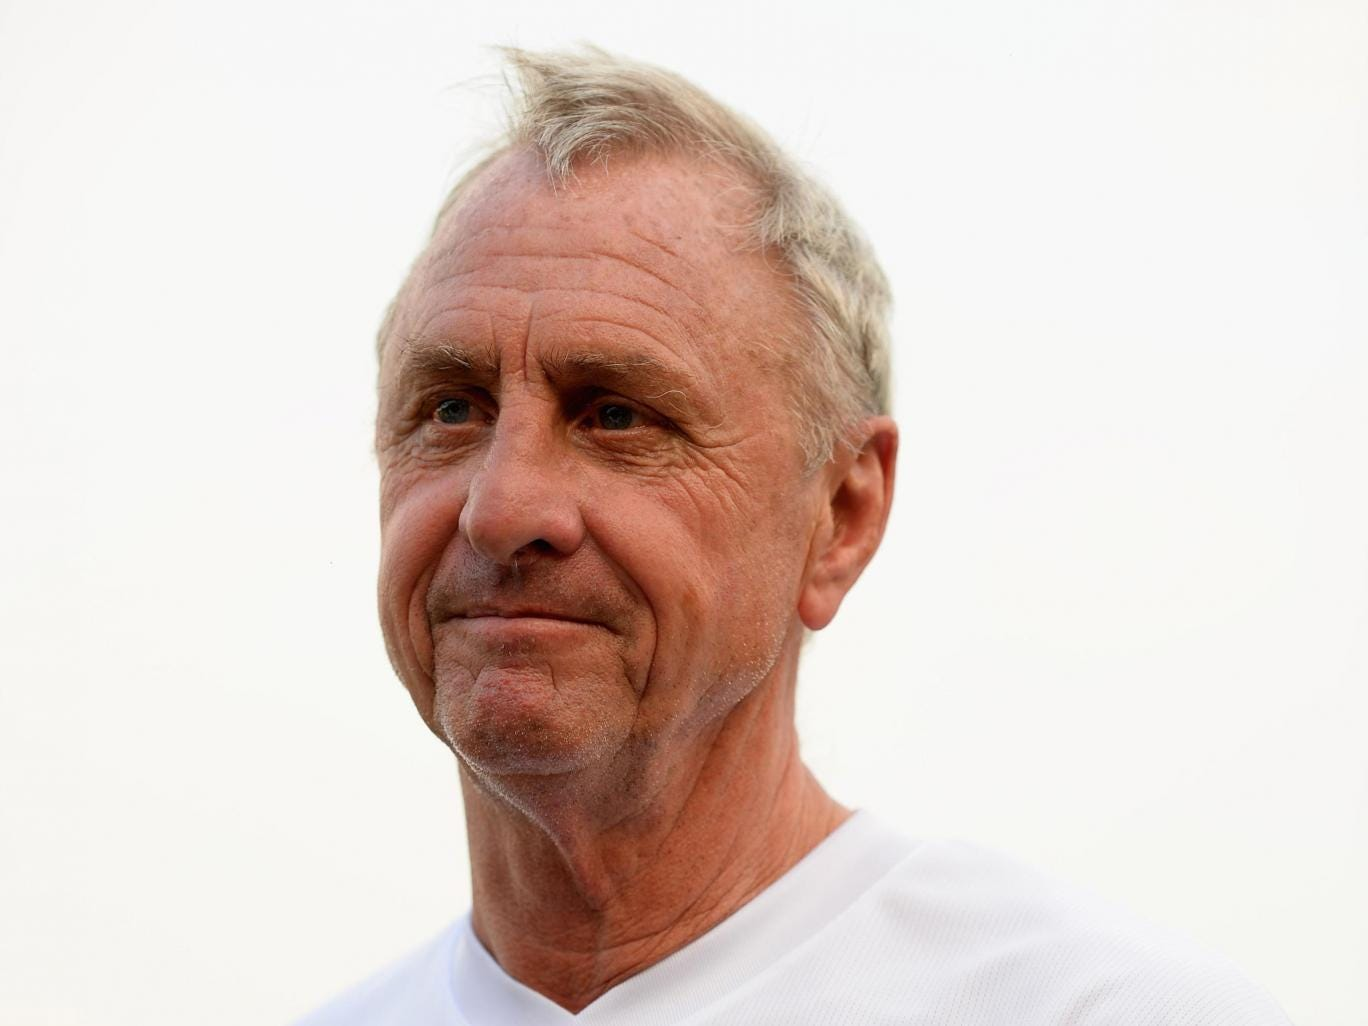 Johan Cruyff has been left bemused by Jose Mourinho's admission that PSG are favourites to go through the Champions League quarter-finals